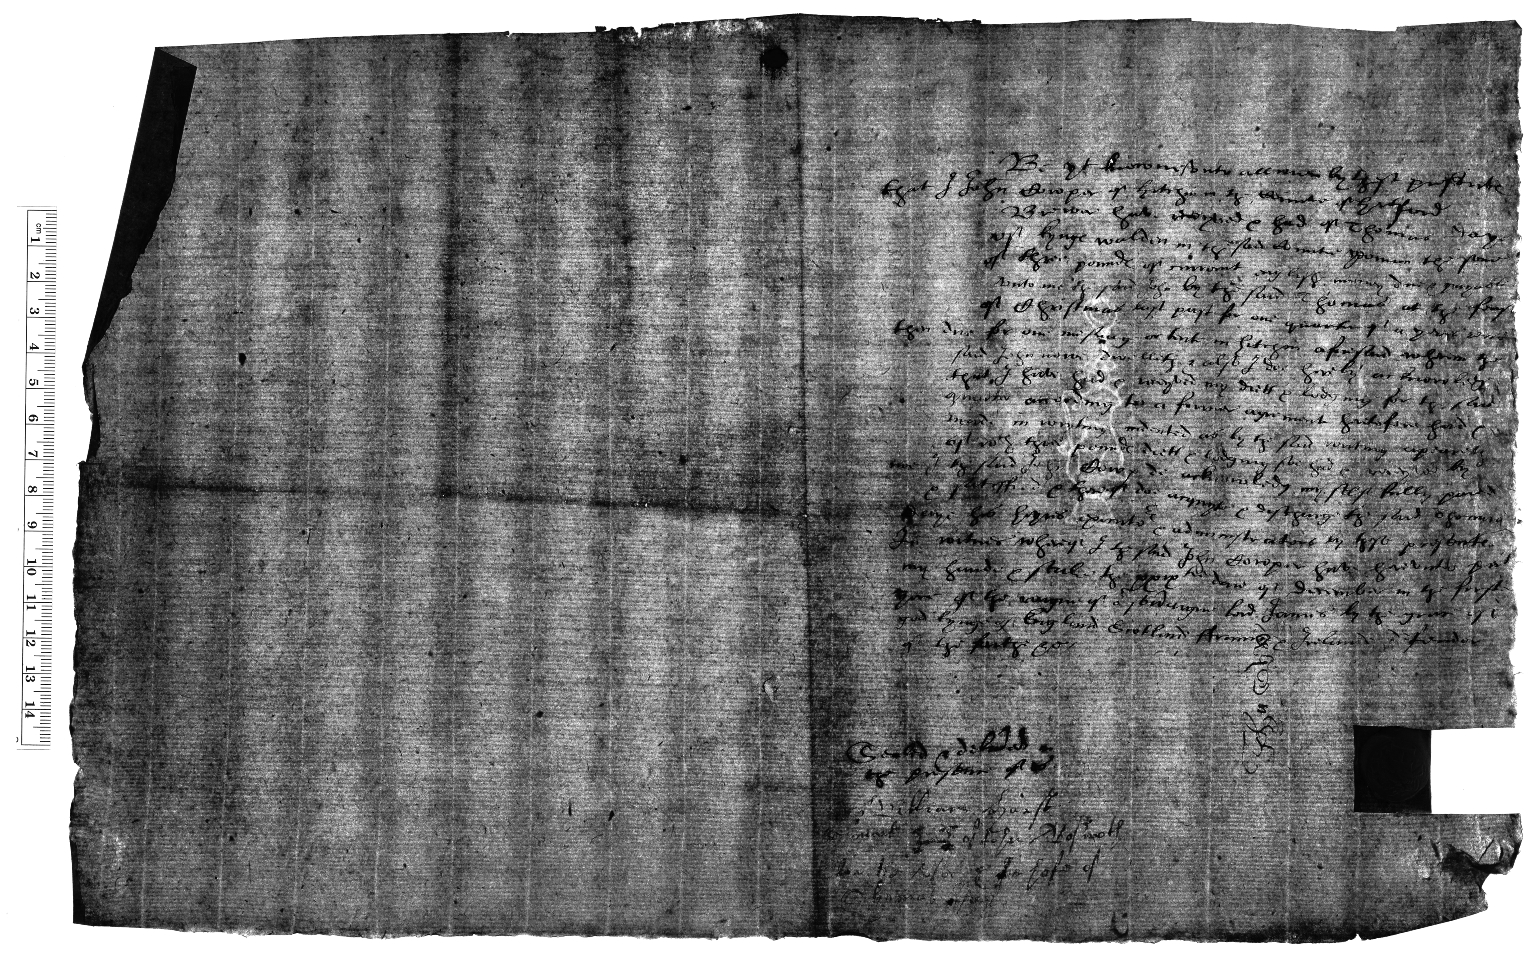 Acquittance from John Cowper, brewer of Hitchin, Hertfordshire, to Thomas Day of King's Walden, Hertfordshire